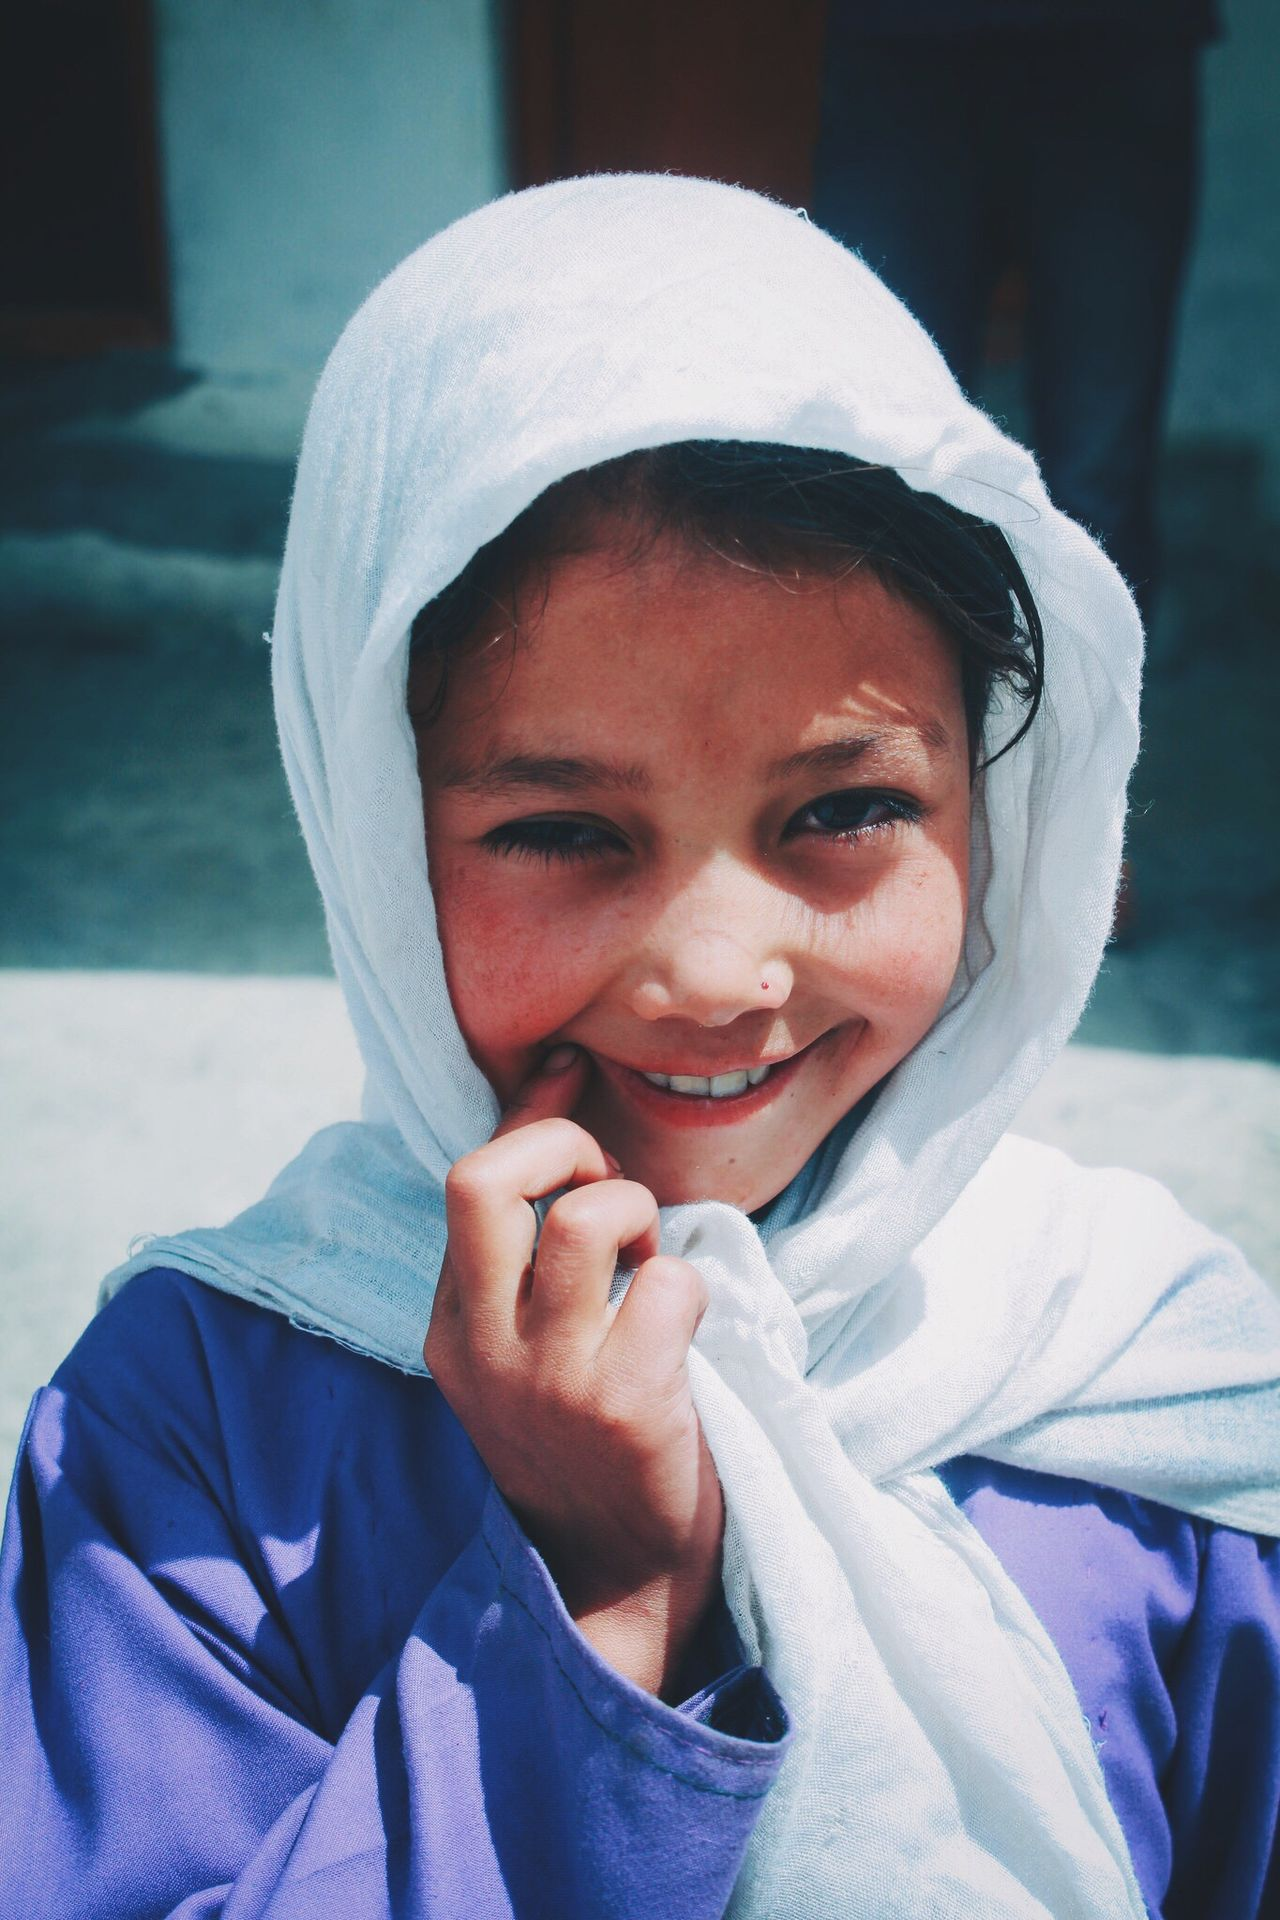 Innocent Smile Cute Smile  Kashmir Beauty Turtuk Village SchoolGirl Beautiful Very Cute Portrait Of Girl Portfolio Head Shots